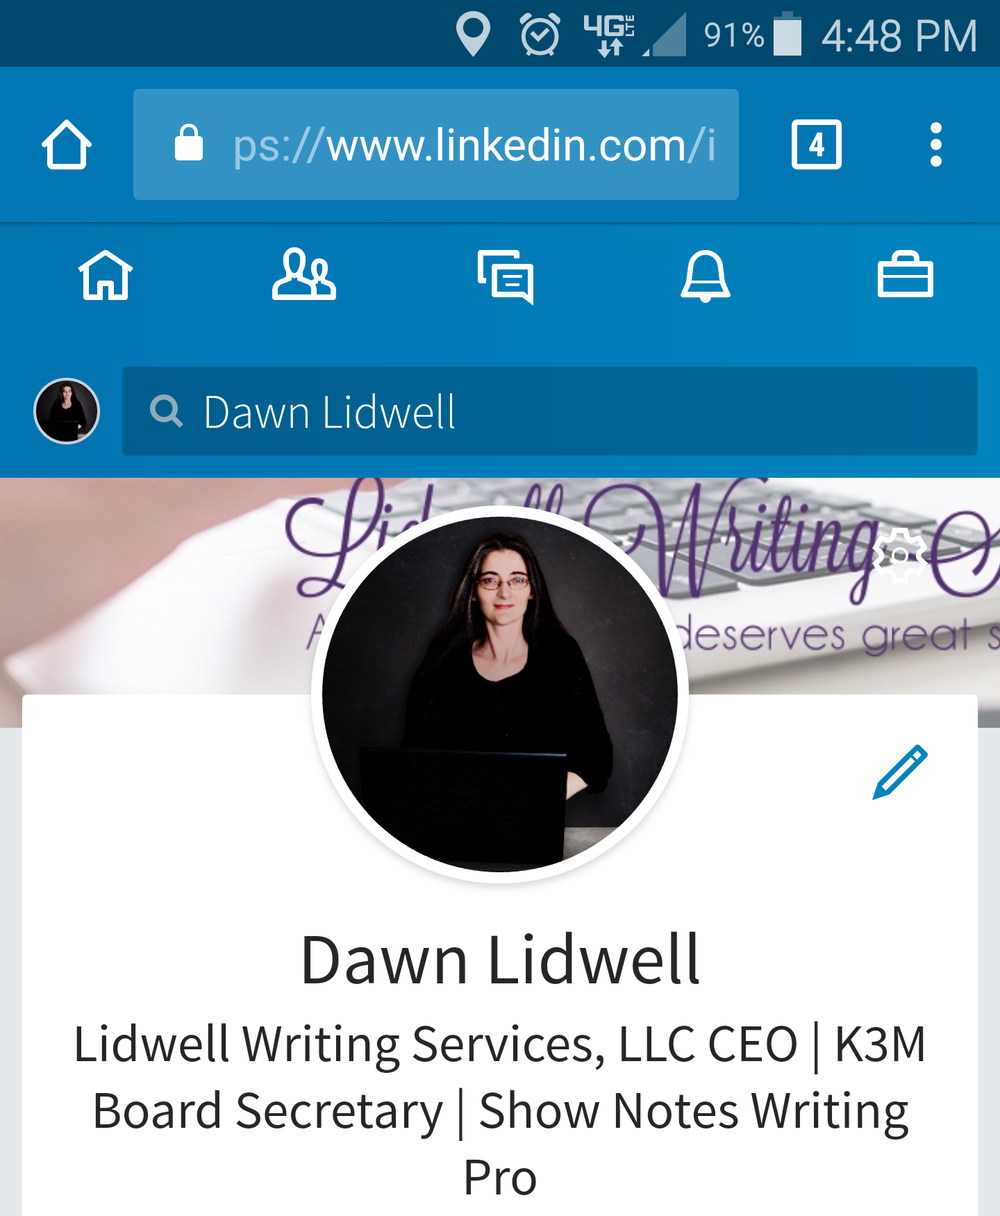 LinkedIn Profile Screenshot Nov 2017-1.png